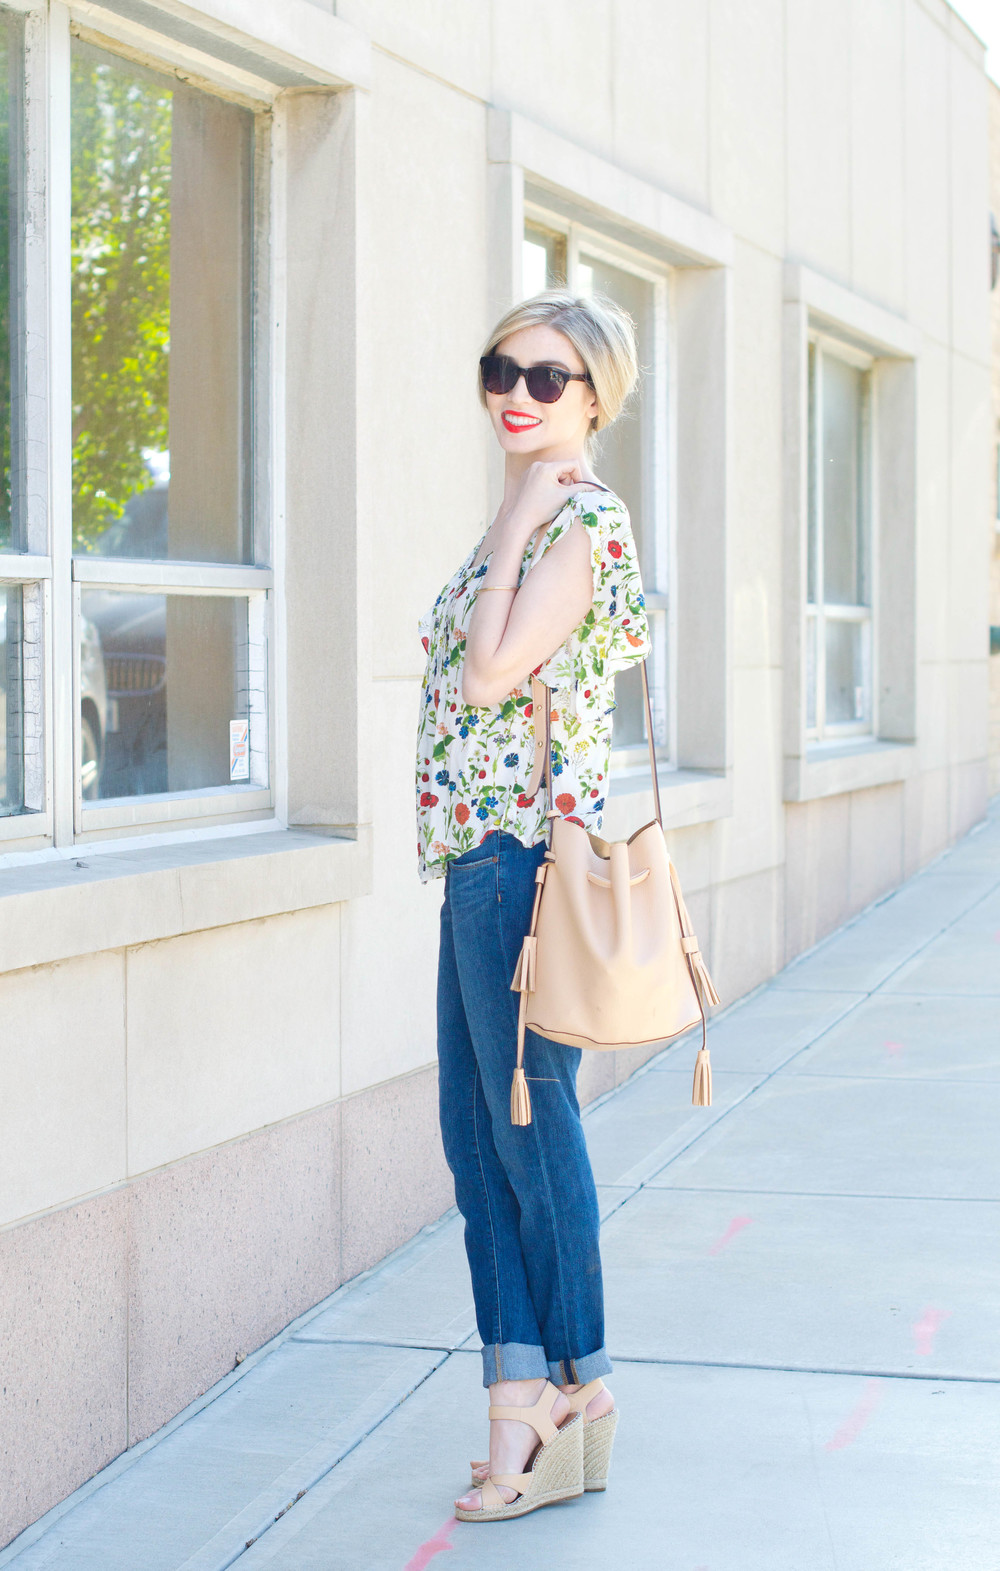 Street style tip of the day: The floral blouse